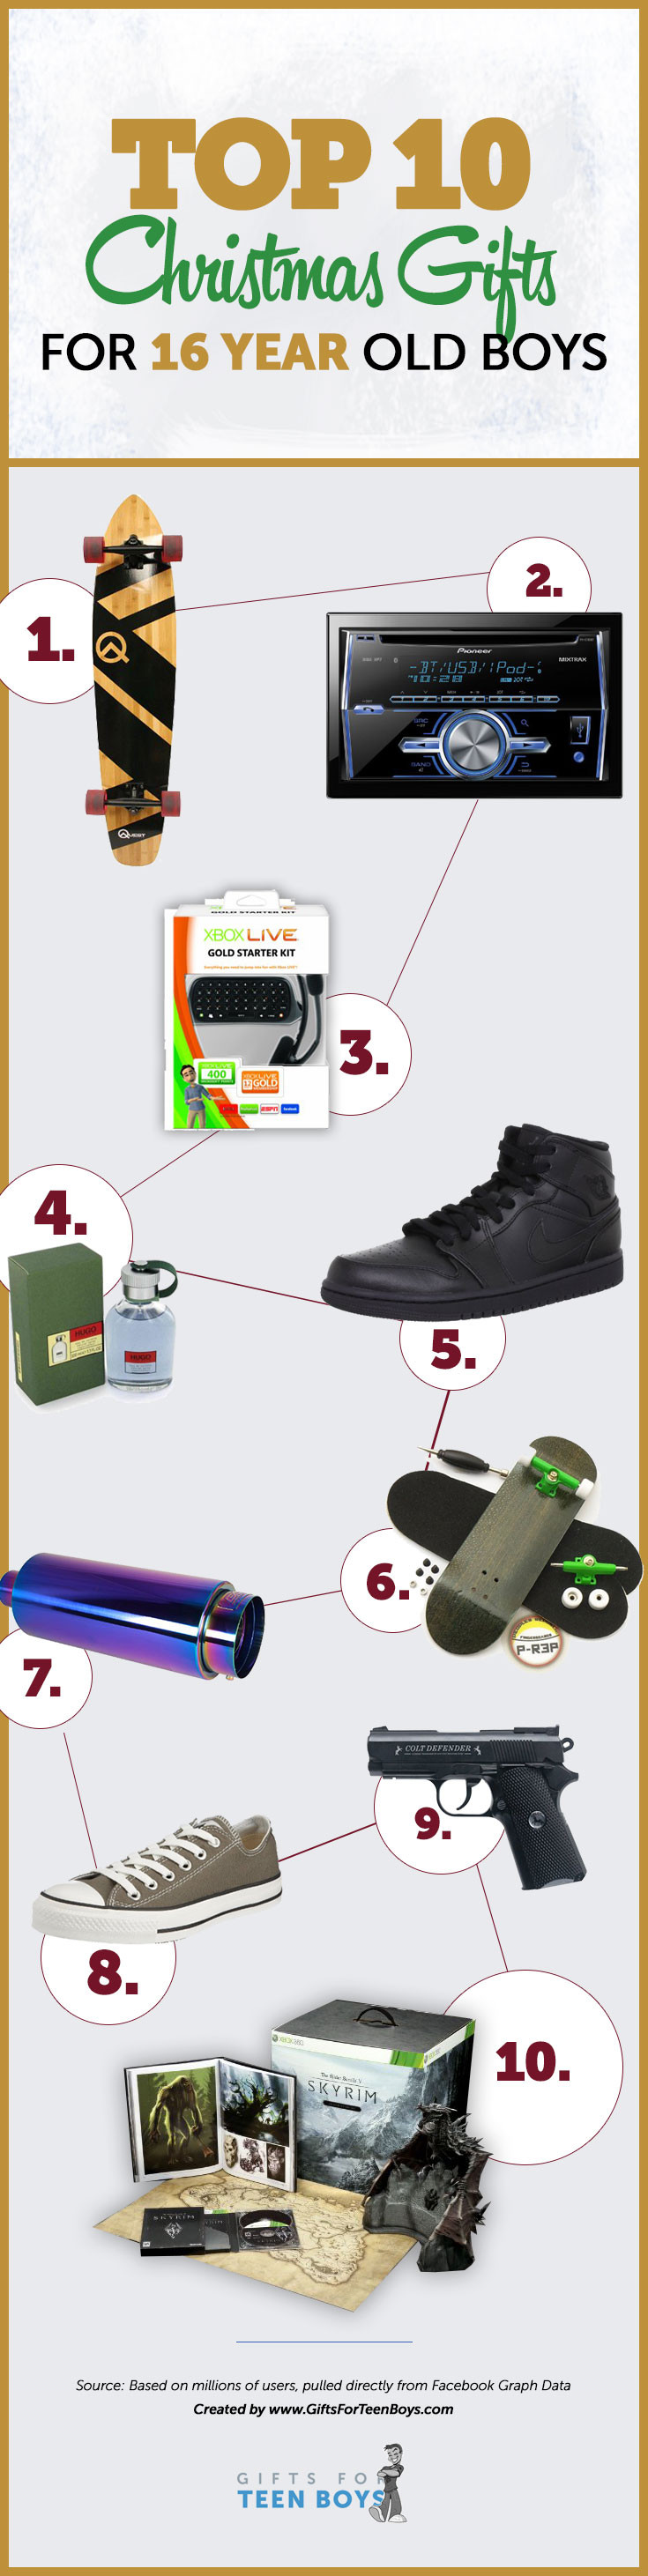 Gift Ideas For 16 Year Old Boys  Christmas Gifts 16 Year Old Boys